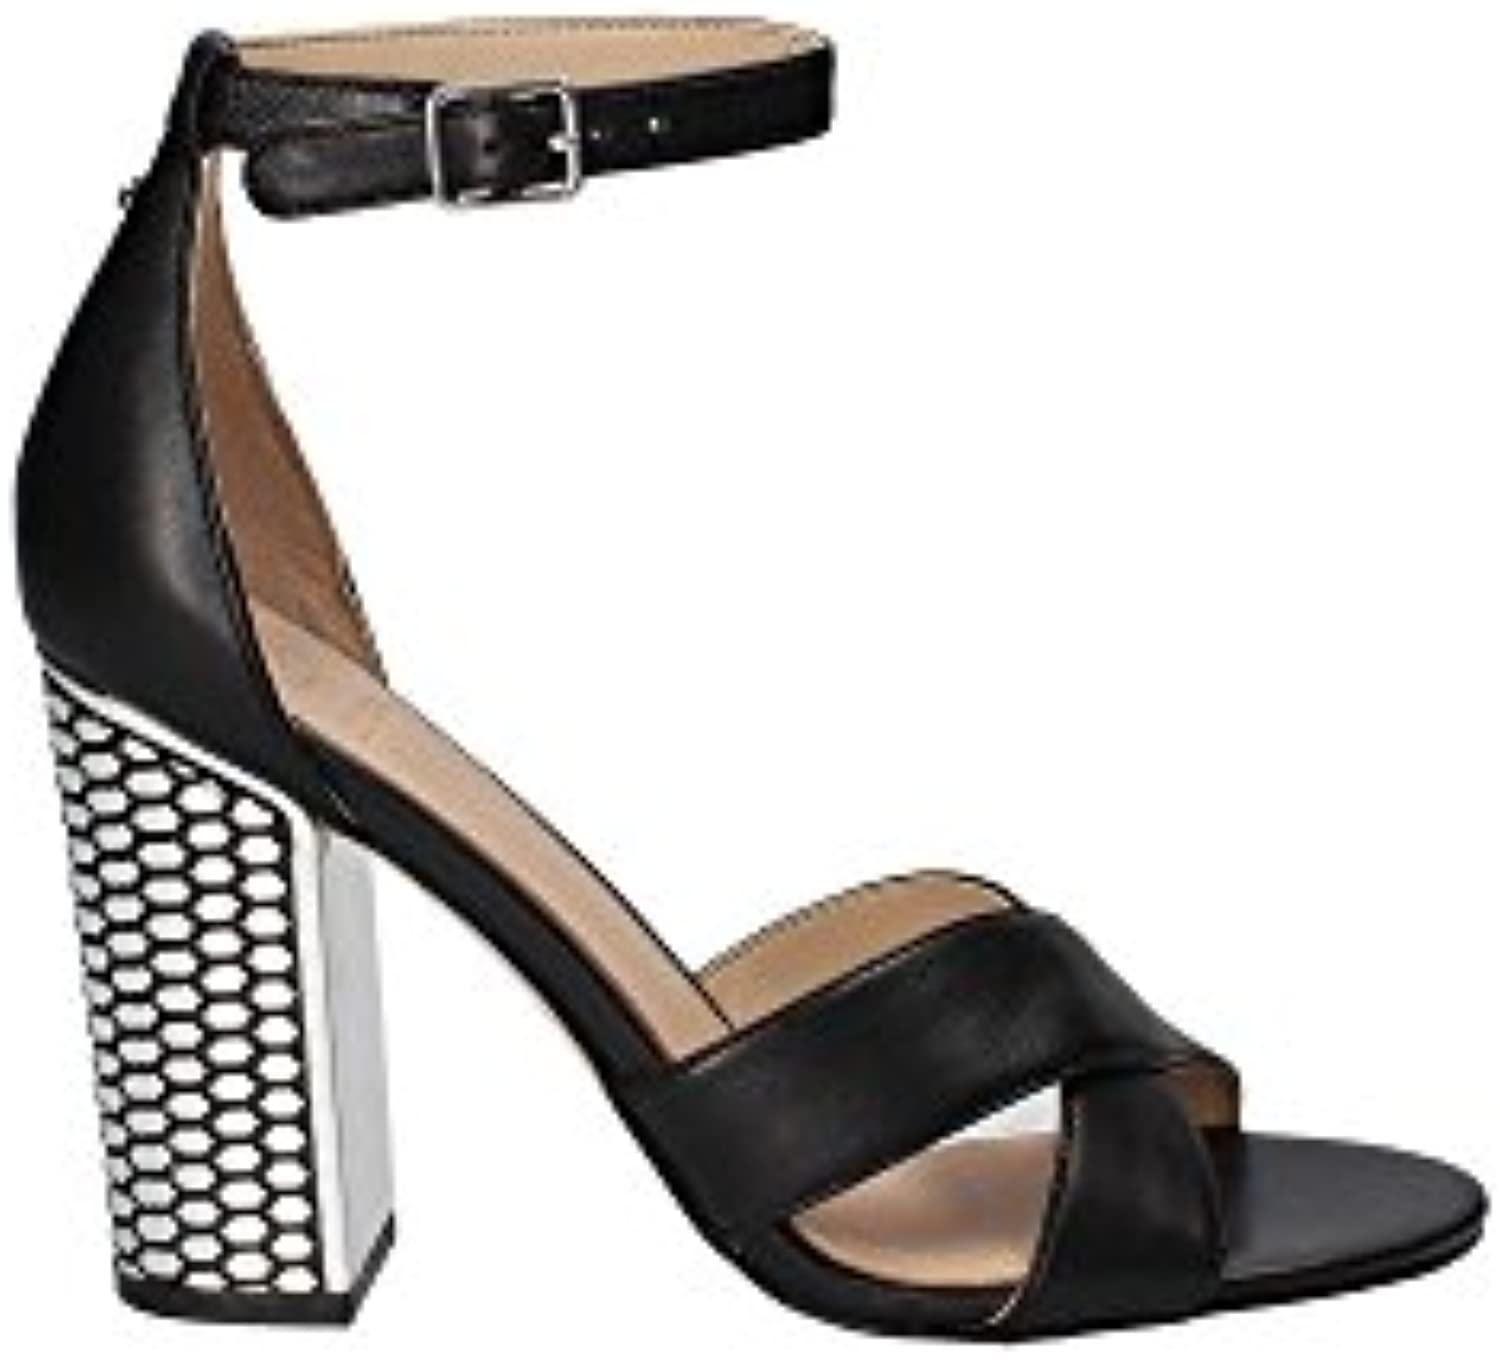 Guess Guess Guess FLRNE1LEA03 Sandalo Donna in Pelle Nera MainApps | Forma elegante  | Uomo/Donna Scarpa  5b24ee